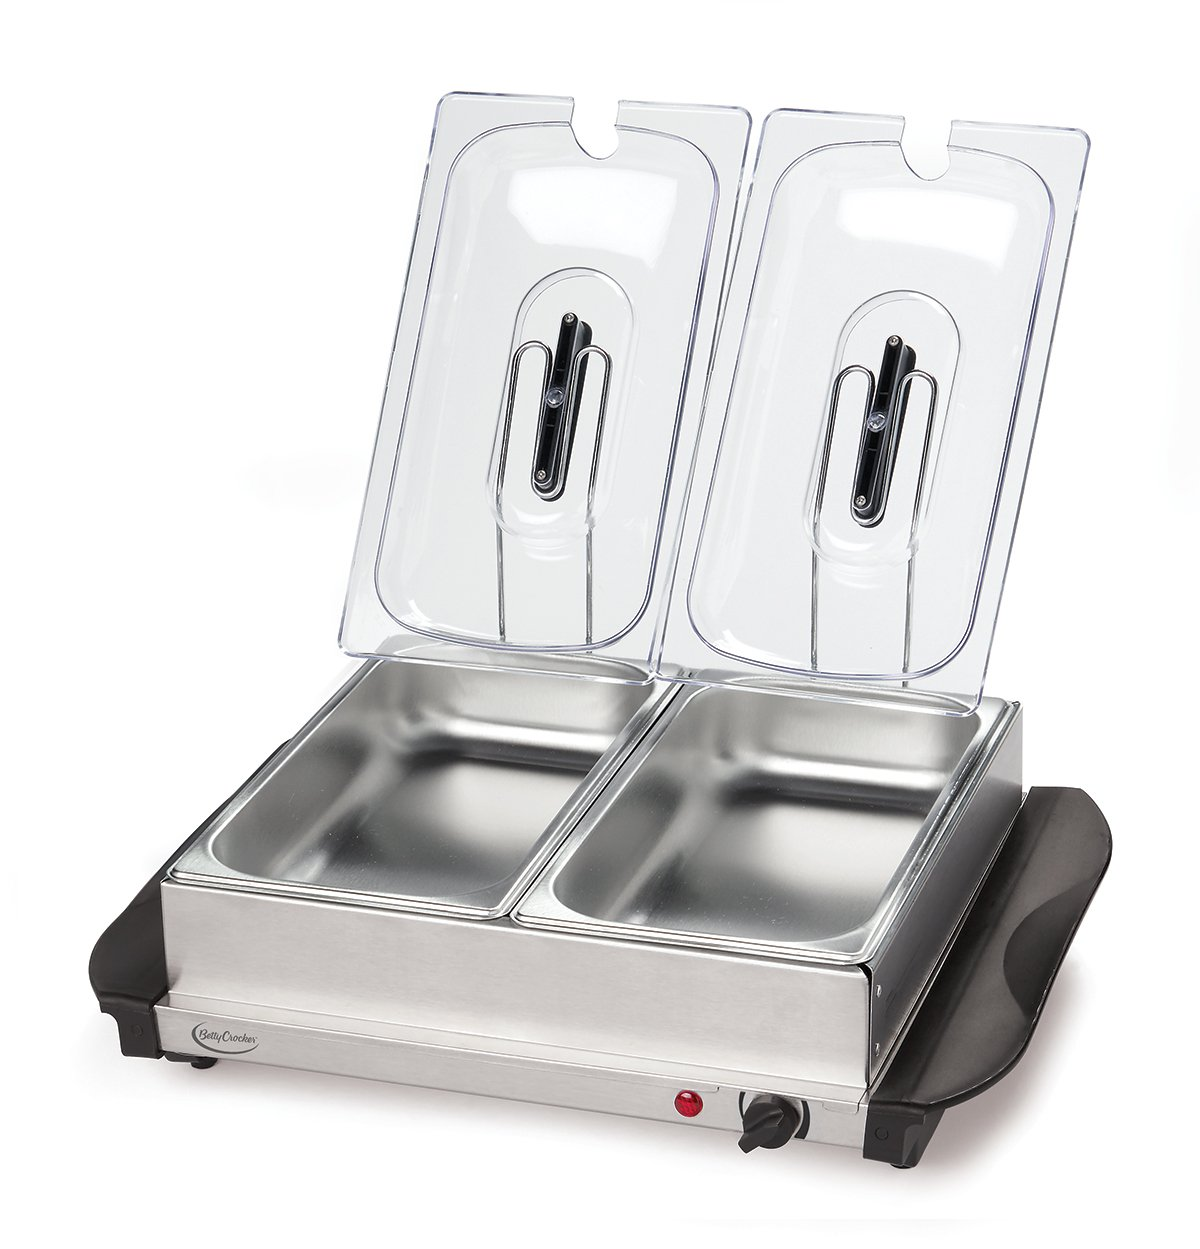 Betty Crocker Stainless Steel Buffet Server and Warming Tray, Silver - BC-2587CY by Betty Crocker